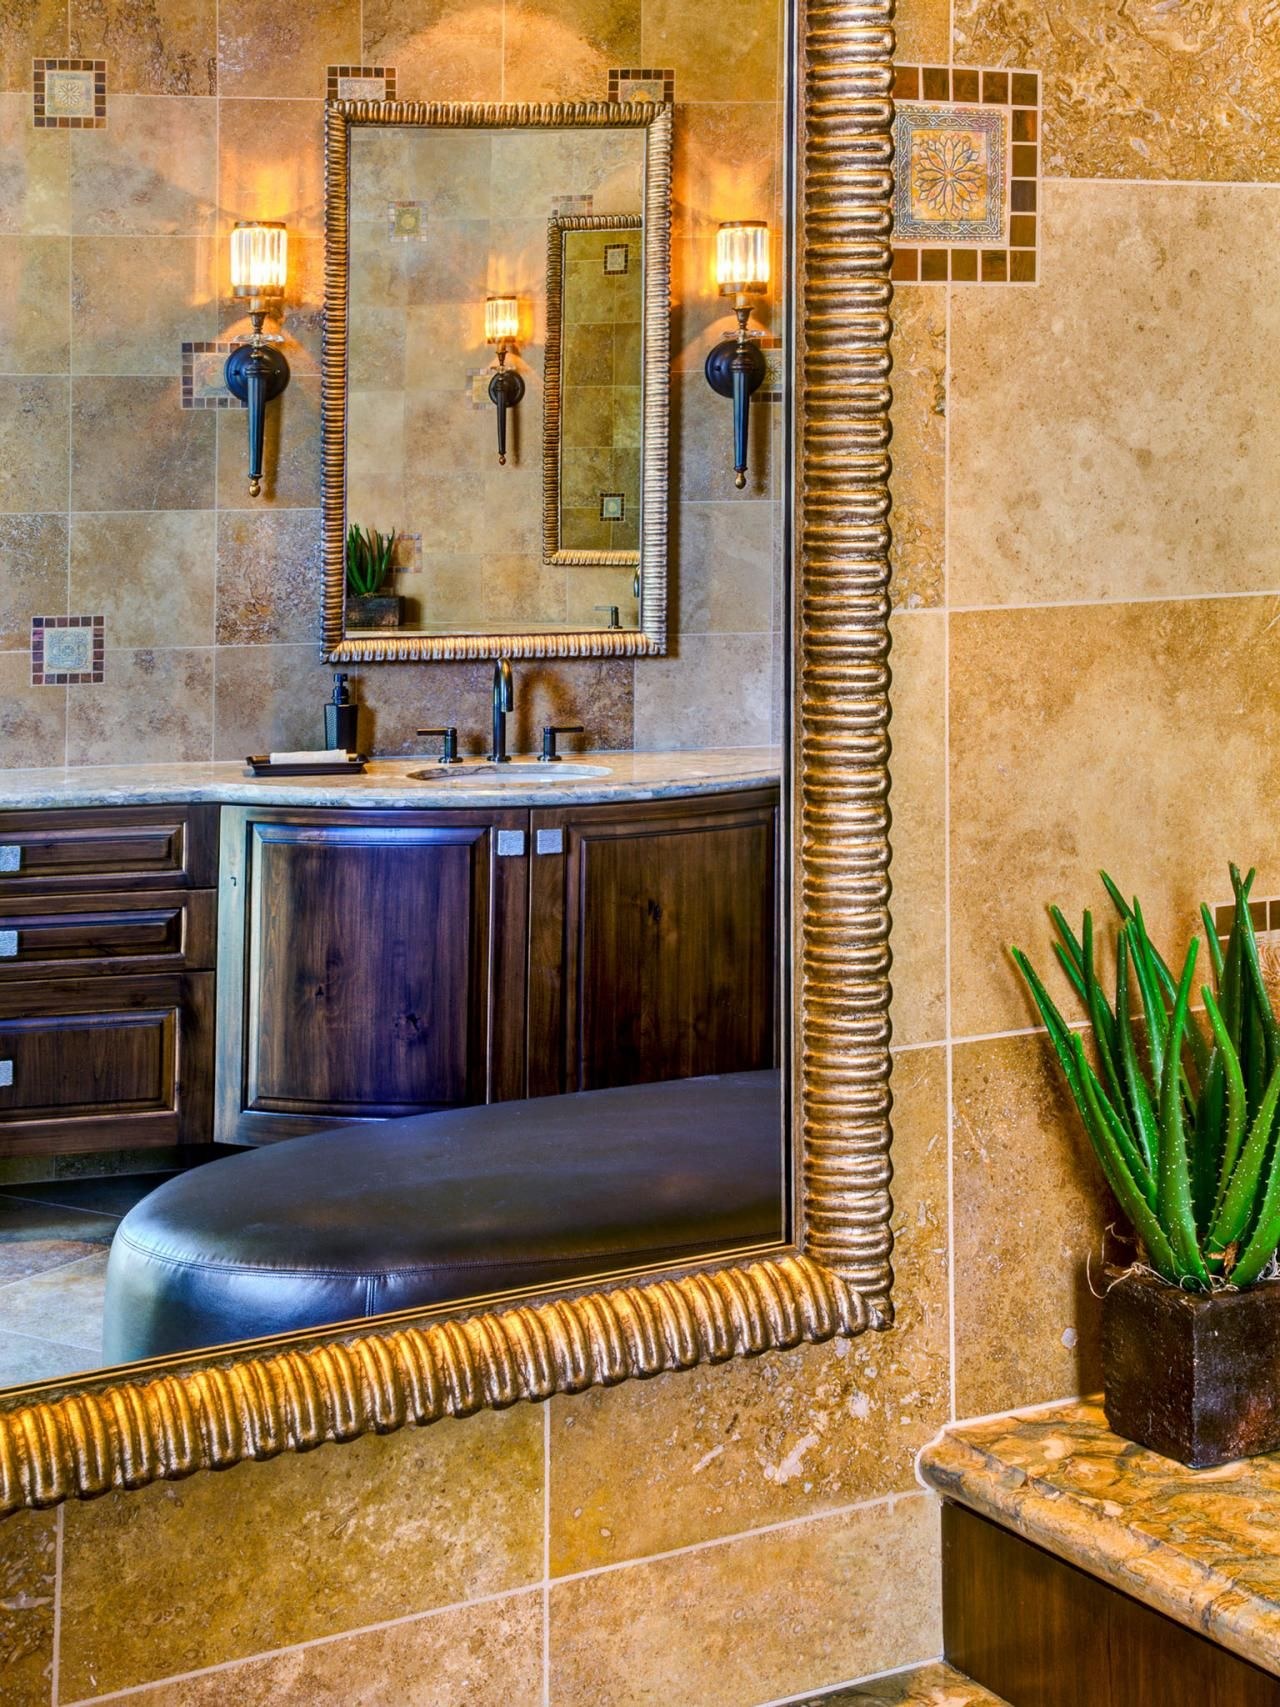 The Variances In The Travertine Wall Tiles And Hand